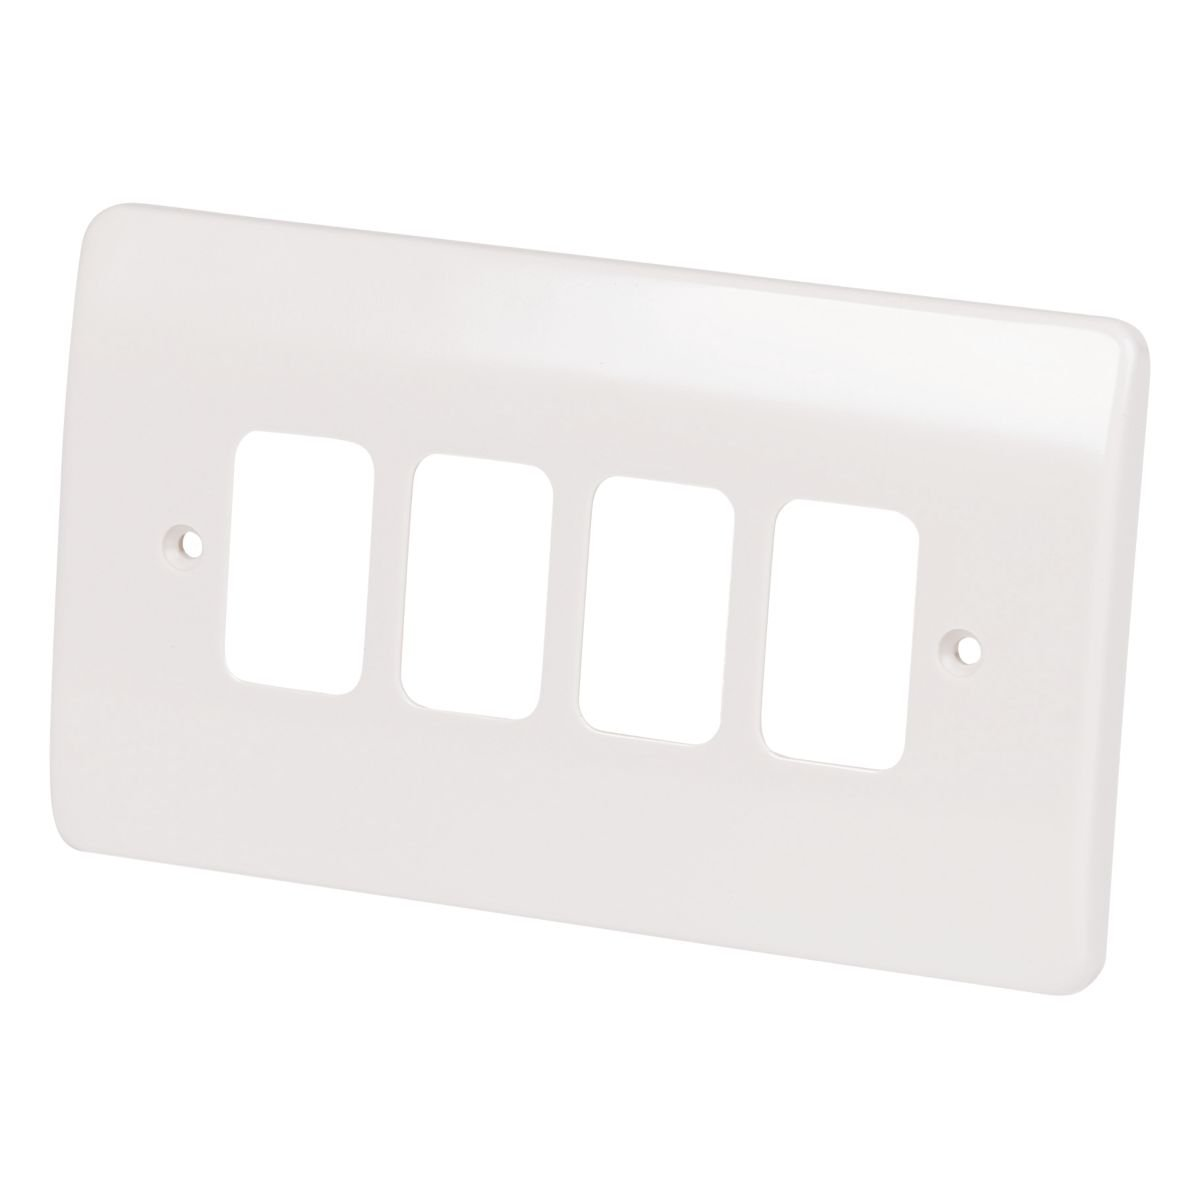 MK 4-Gang Front Plate White